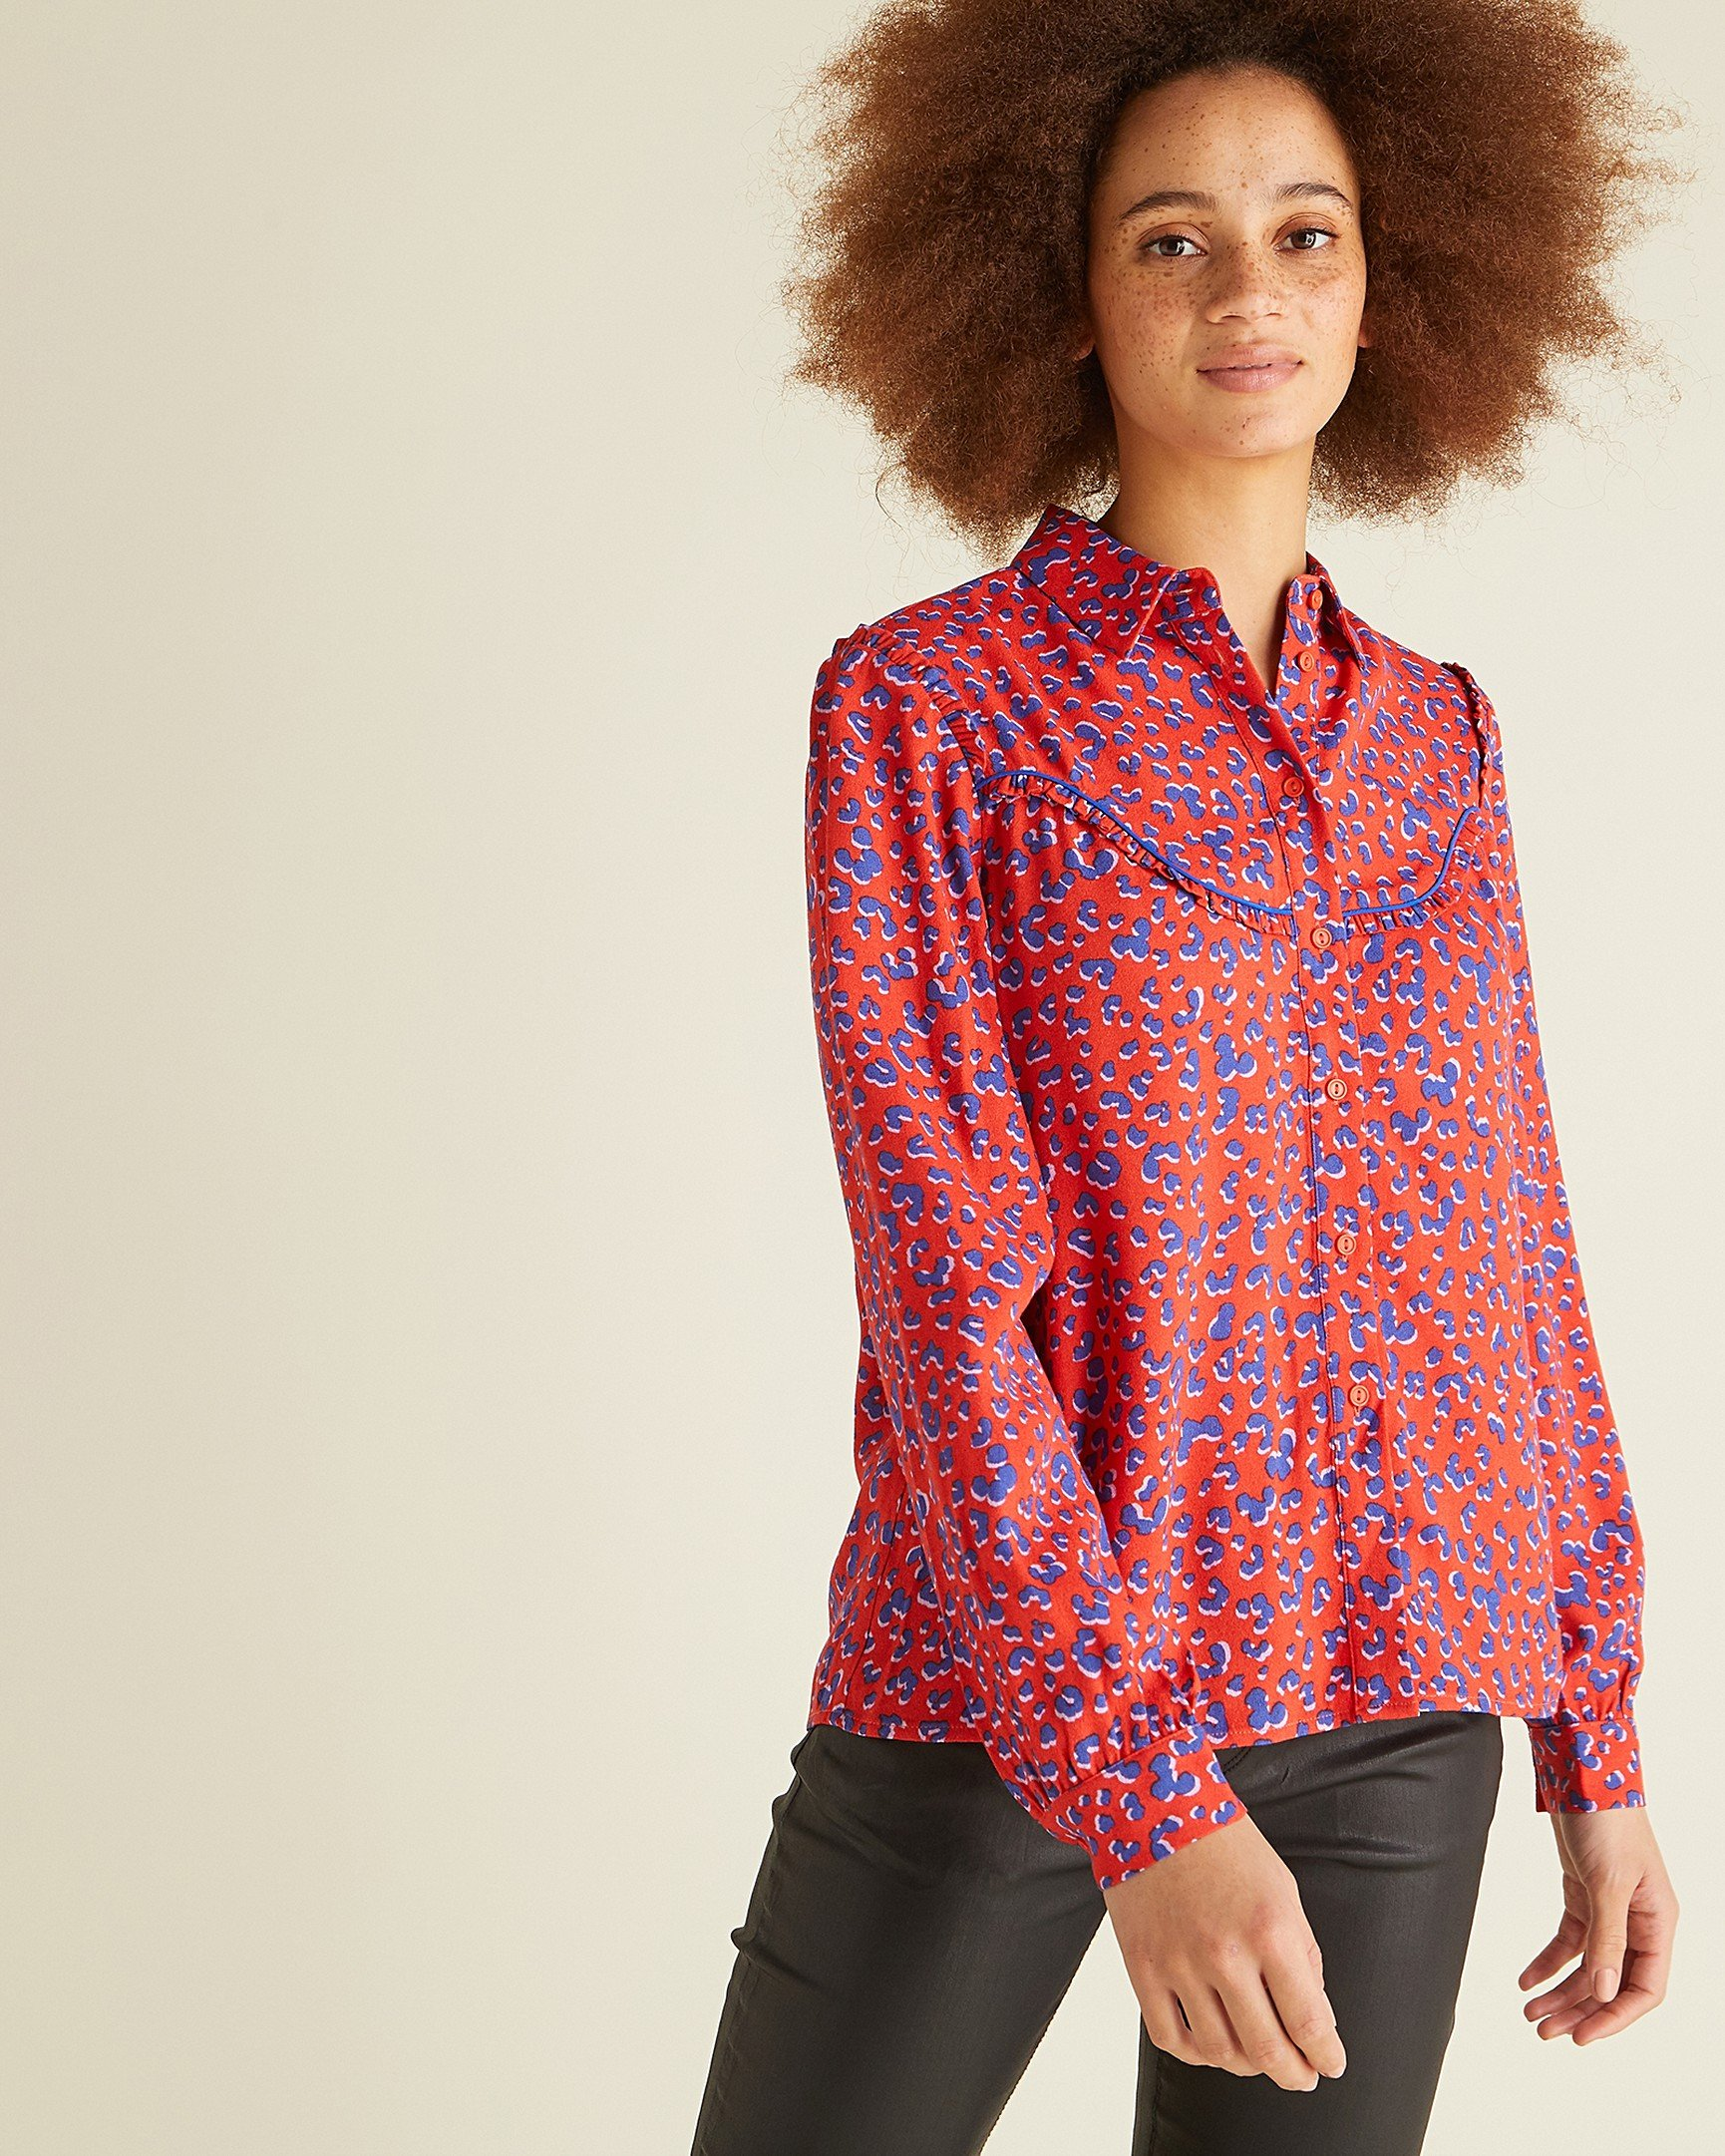 043d9623 Tops | Blouses, Shirts & Tops for Women | Oliver Bonas